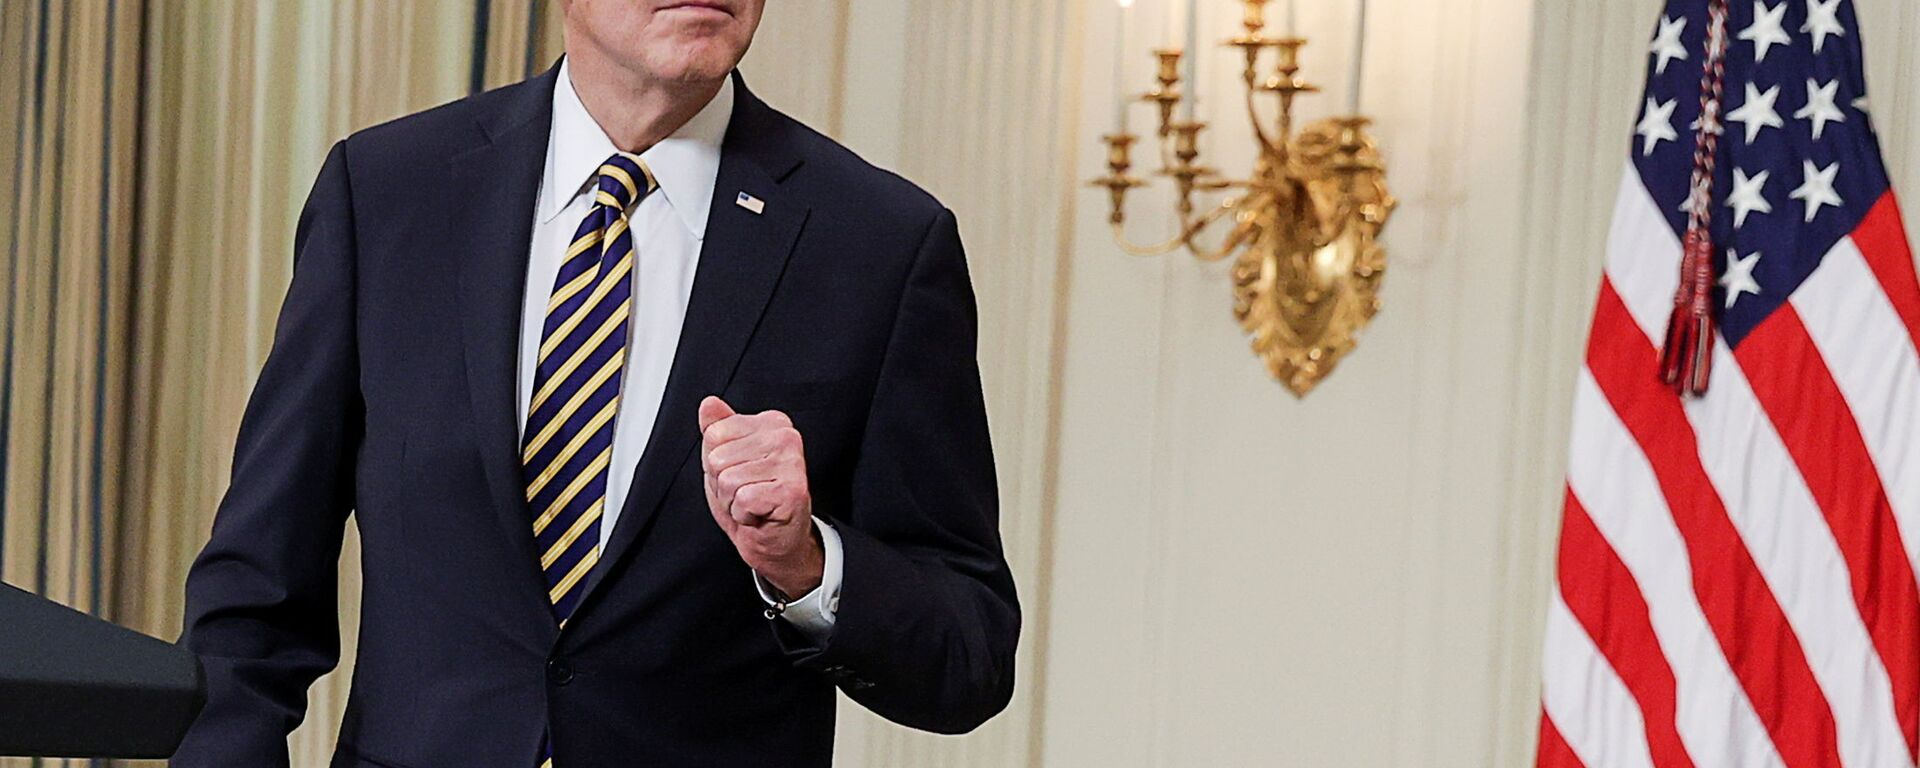 U.S. President Joe Biden listens to a question after delivering remarks and prior to signing an executive order, aimed at addressing a global semiconductor chip shortage, in the State Dining Room at the White House in Washington, U.S., February 24, 2021 - Sputnik Česká republika, 1920, 24.07.2021